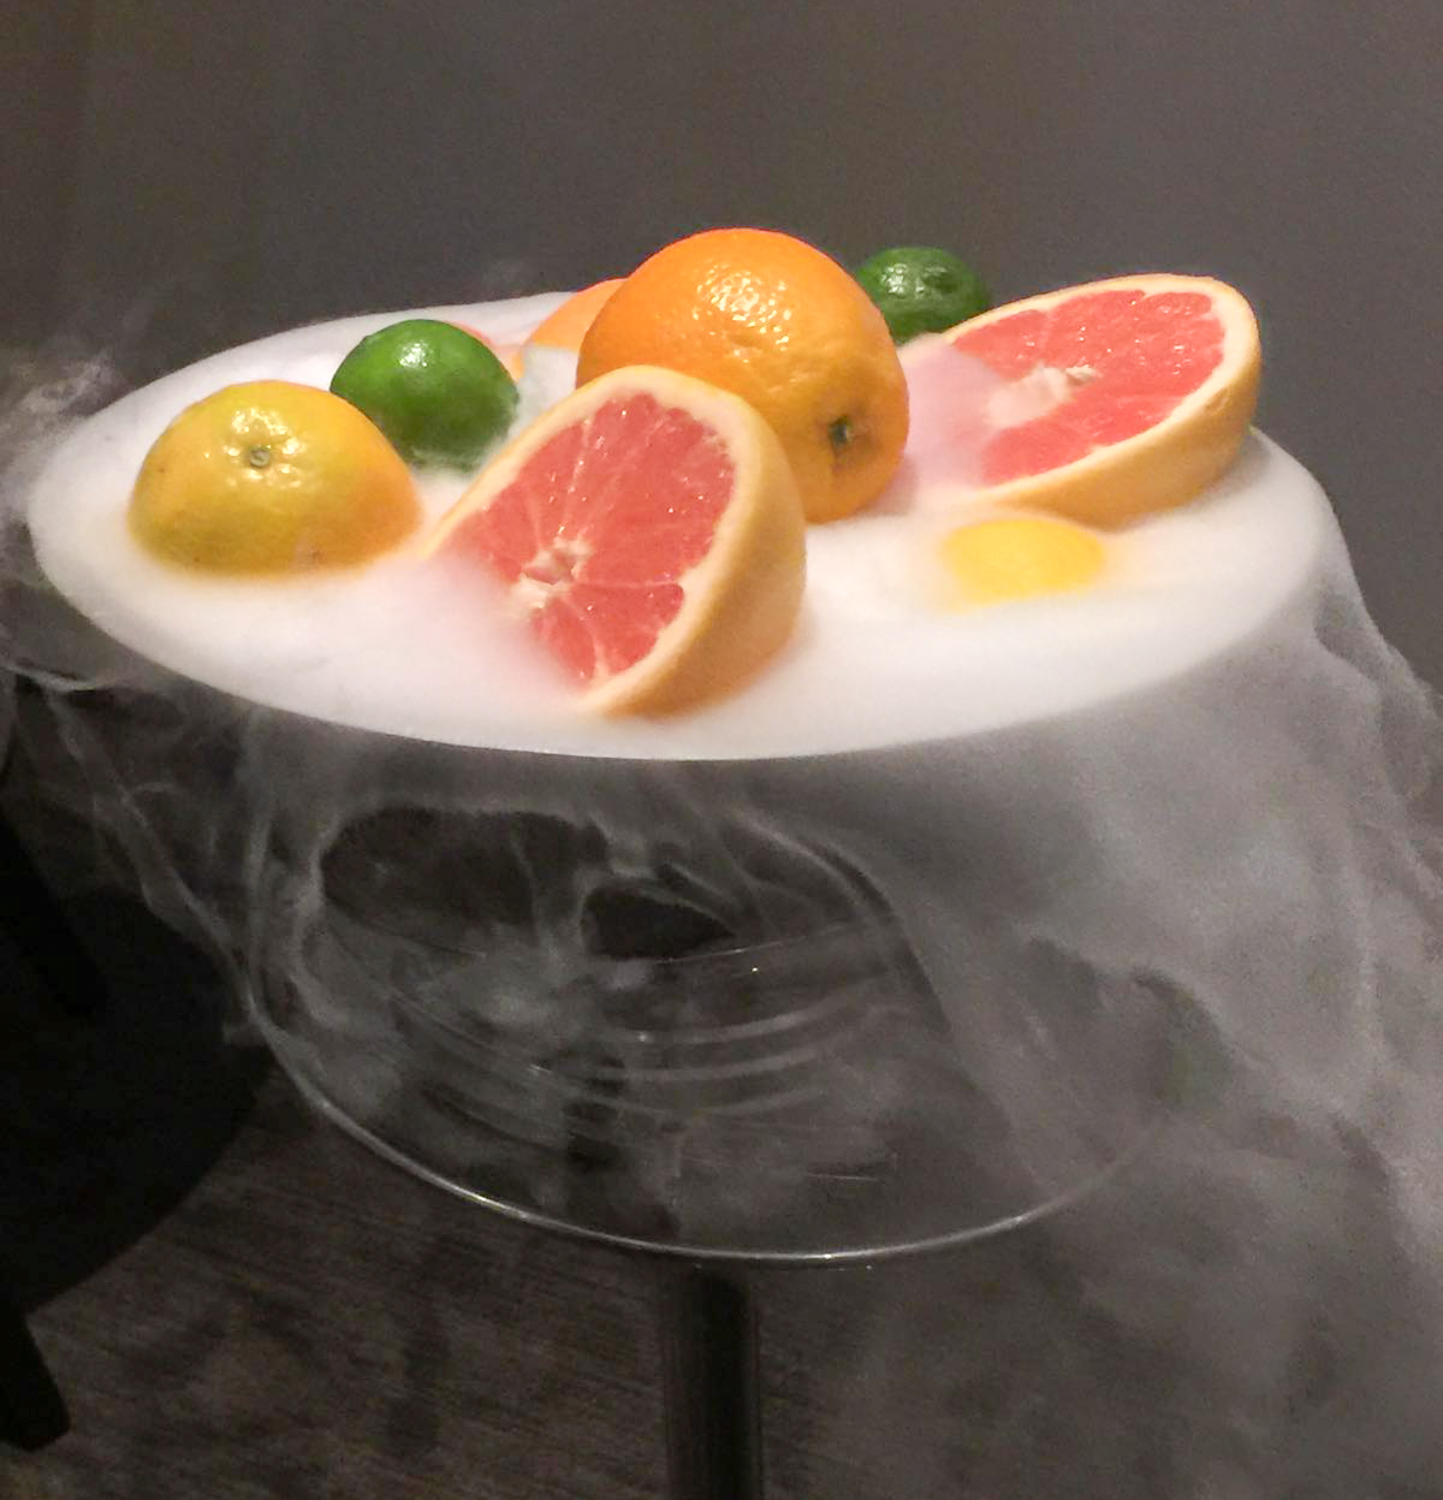 Smoke and mirrors neil stewart reviews alinea chicago for Cuisine alinea